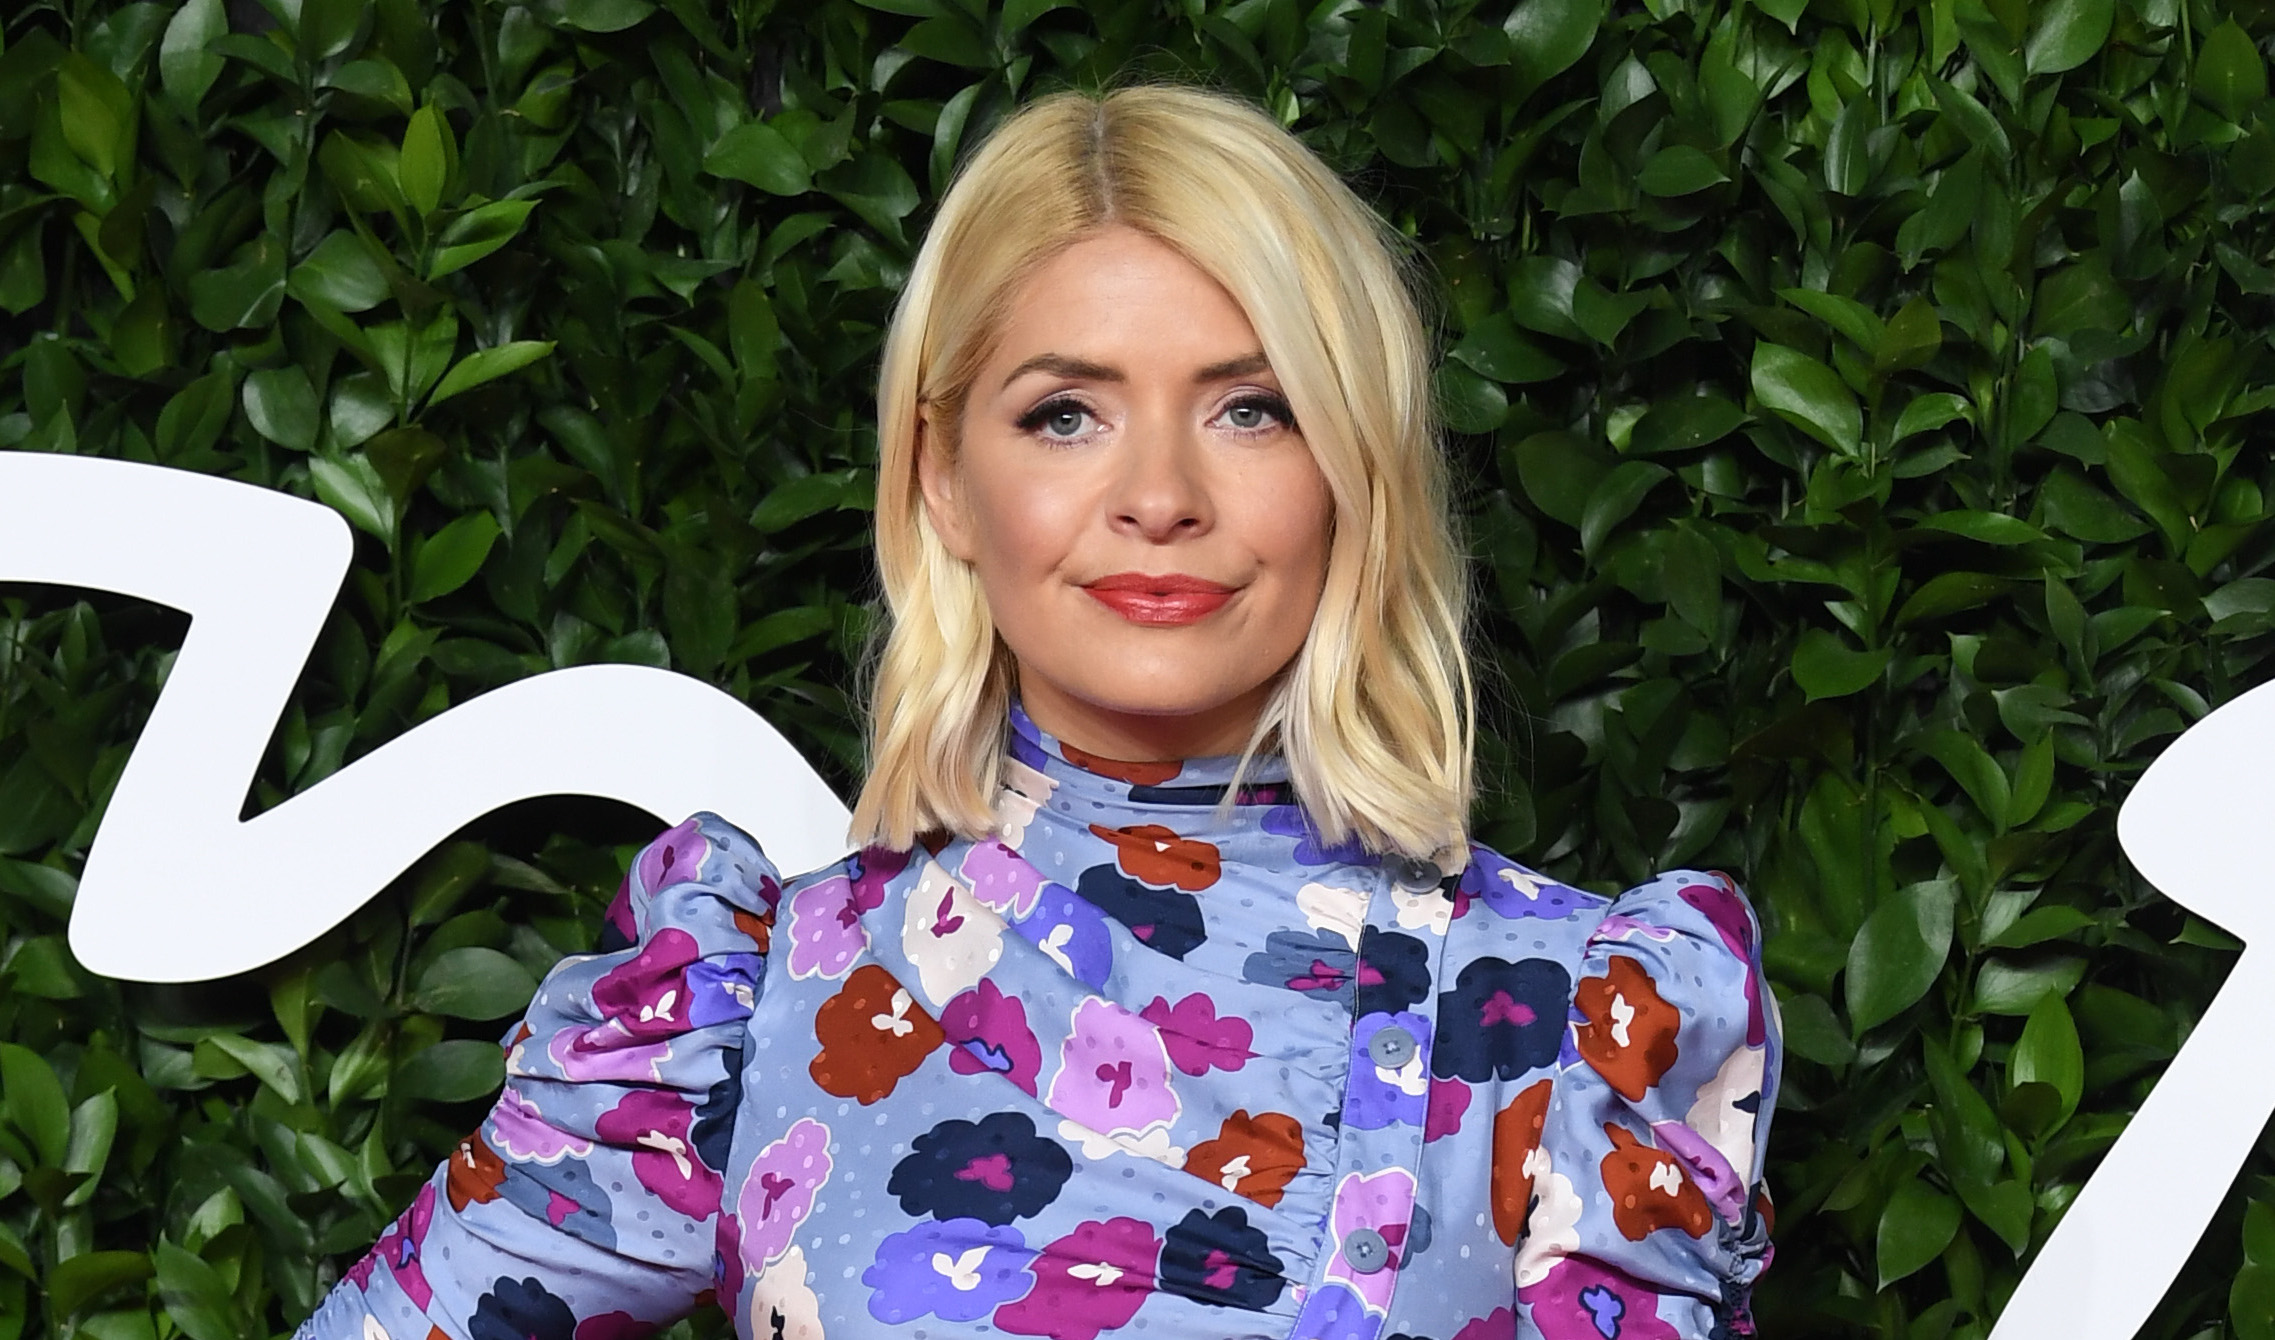 Holly Willoughby and Andrew Flintoff to co-host Olympics-themed show for ITV